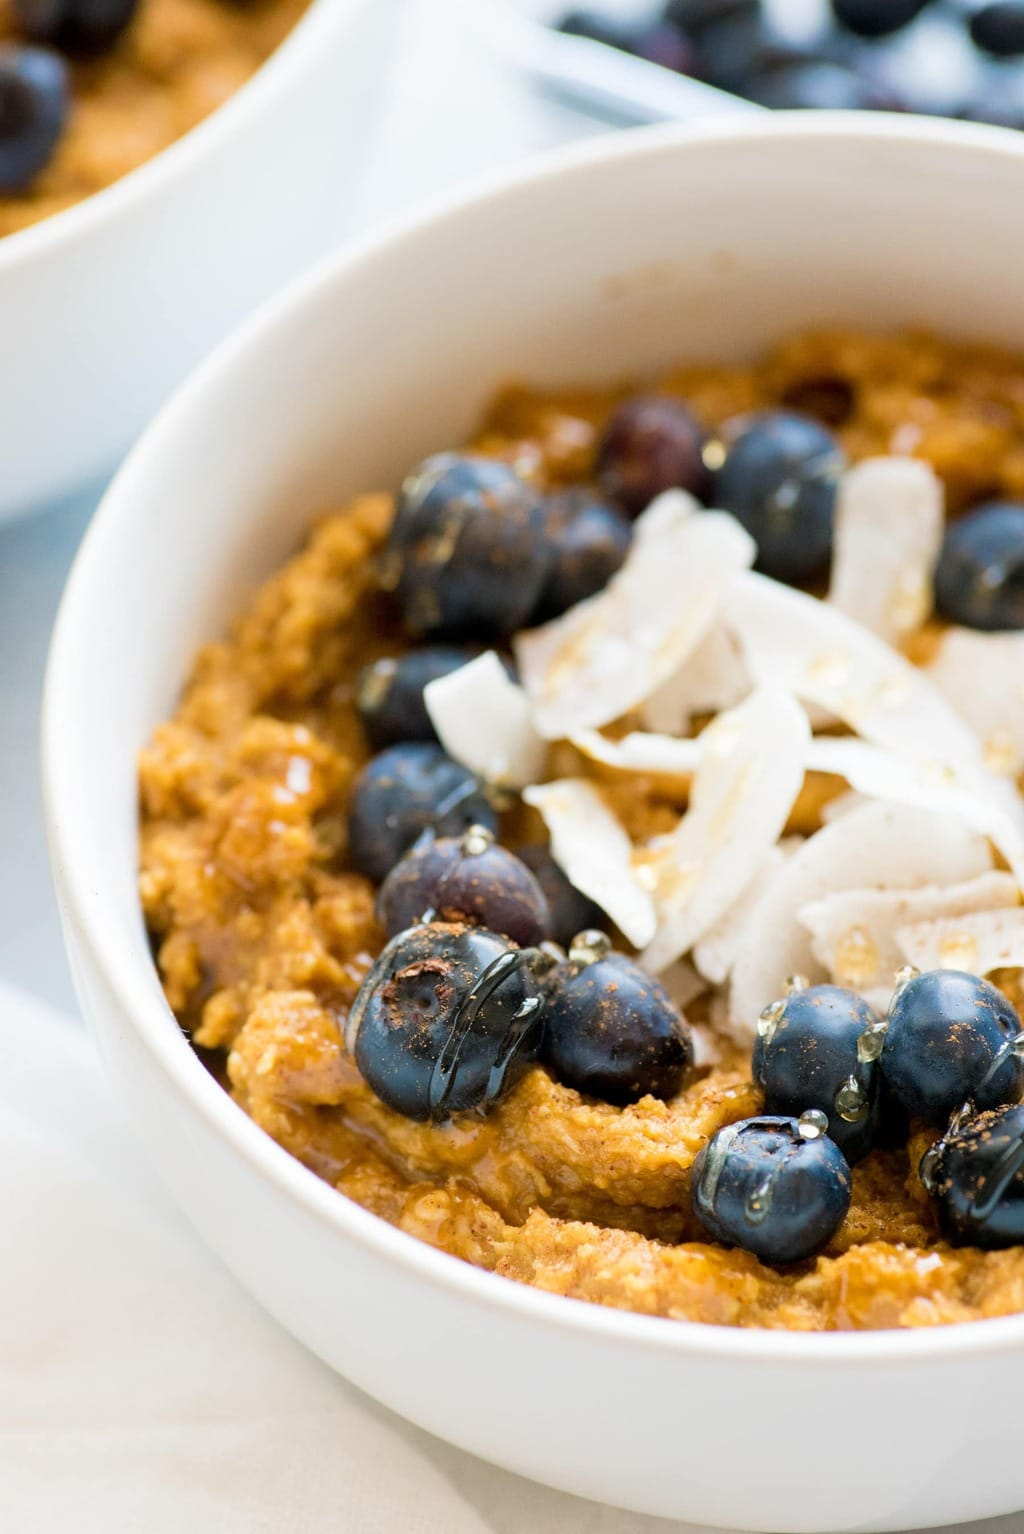 Wondering what to eat for a Daniel Fast breakfast? Now you won't have to think about it!